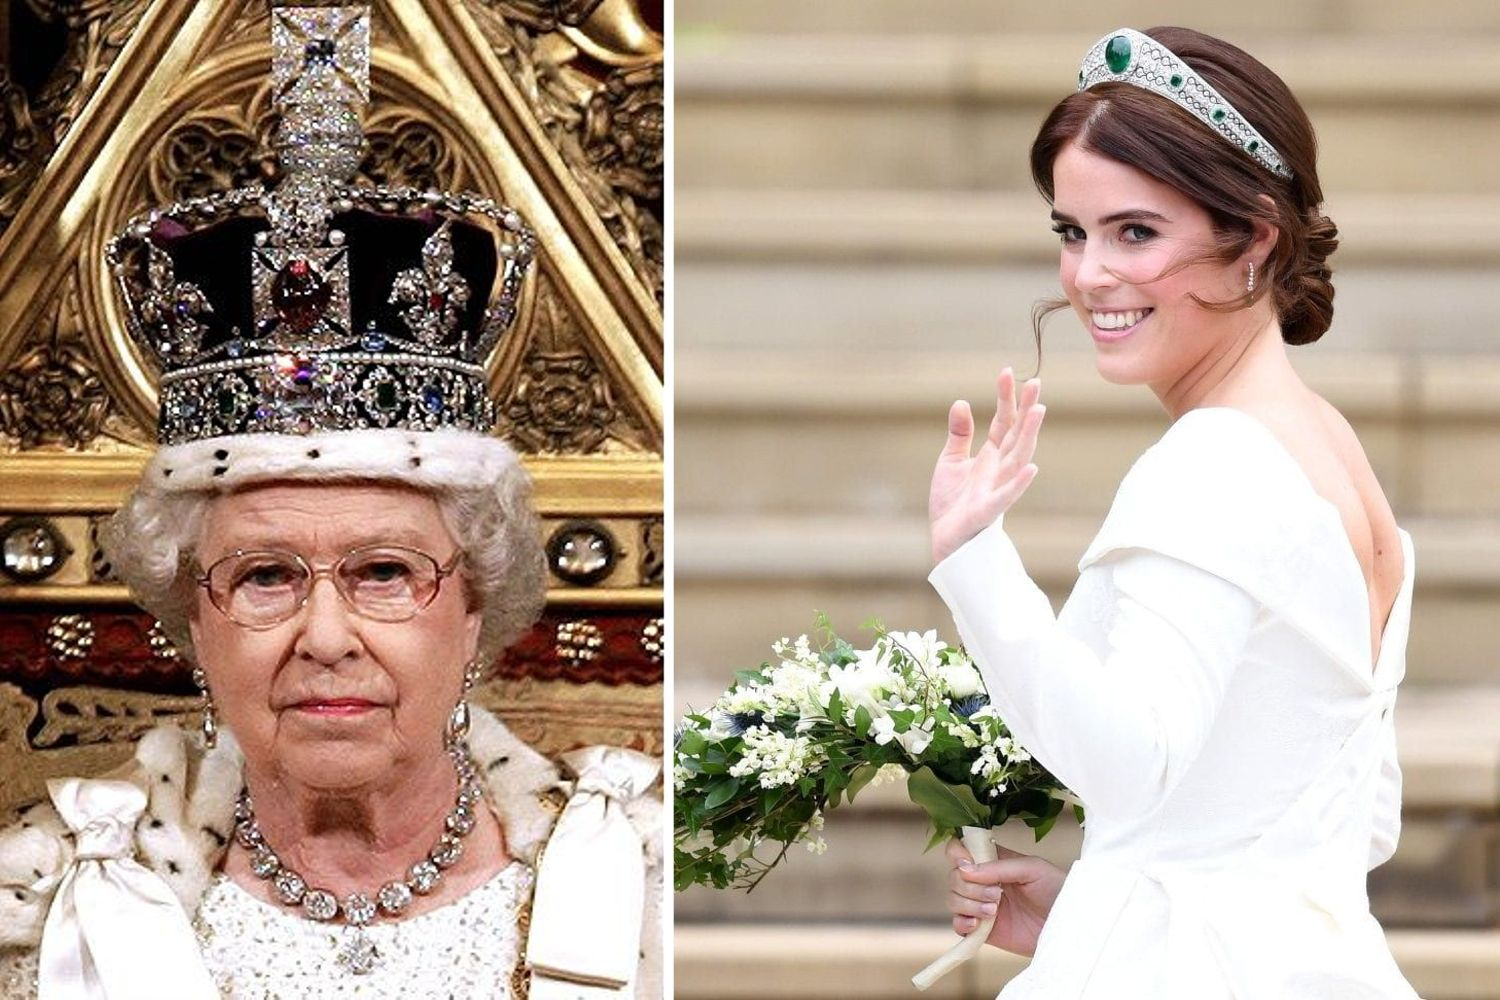 The Most Beautiful Jewels of the British Royal Family